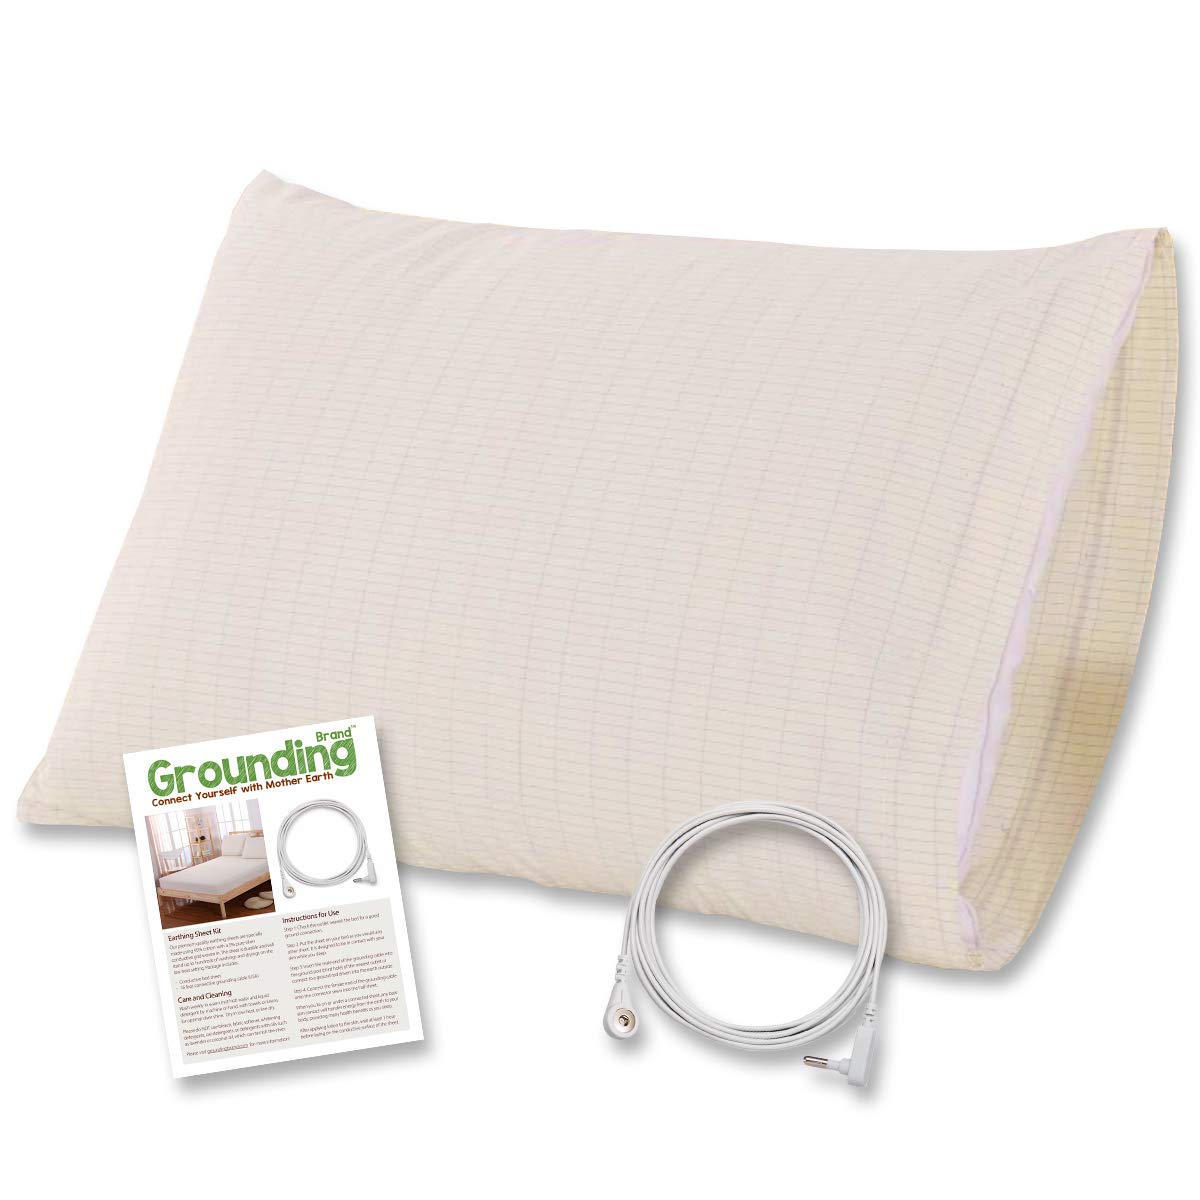 Earthing Pillow Case with Grounding Connection Cord - Silver Antimicrobial Conductive Mat for Better Sleep, Natural Wellness and Healthy Earth Energy, Natural Beige, Standard Queen Size